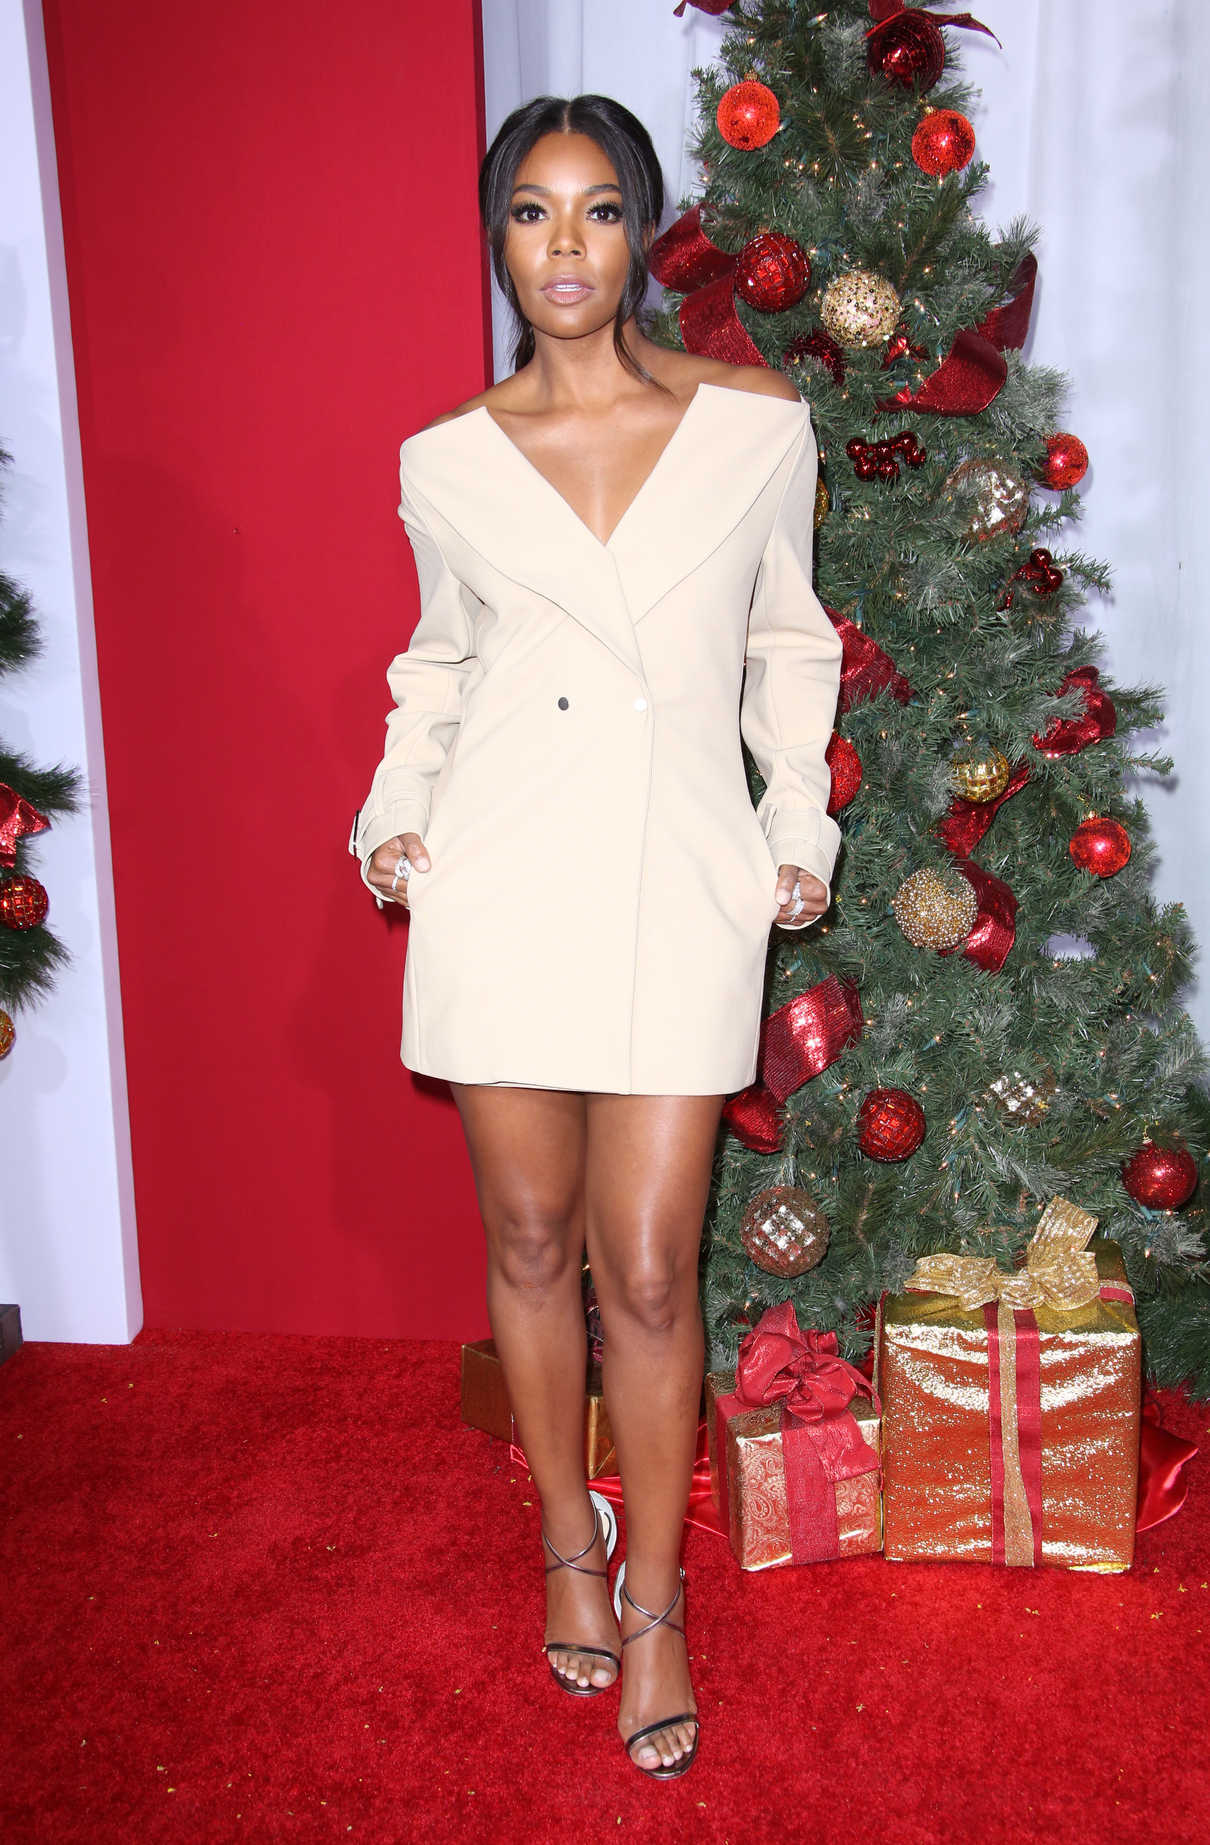 Almost Christmas Gabrielle Union.Gabrielle Union At Almost Christmas Premiere In Westwood 11